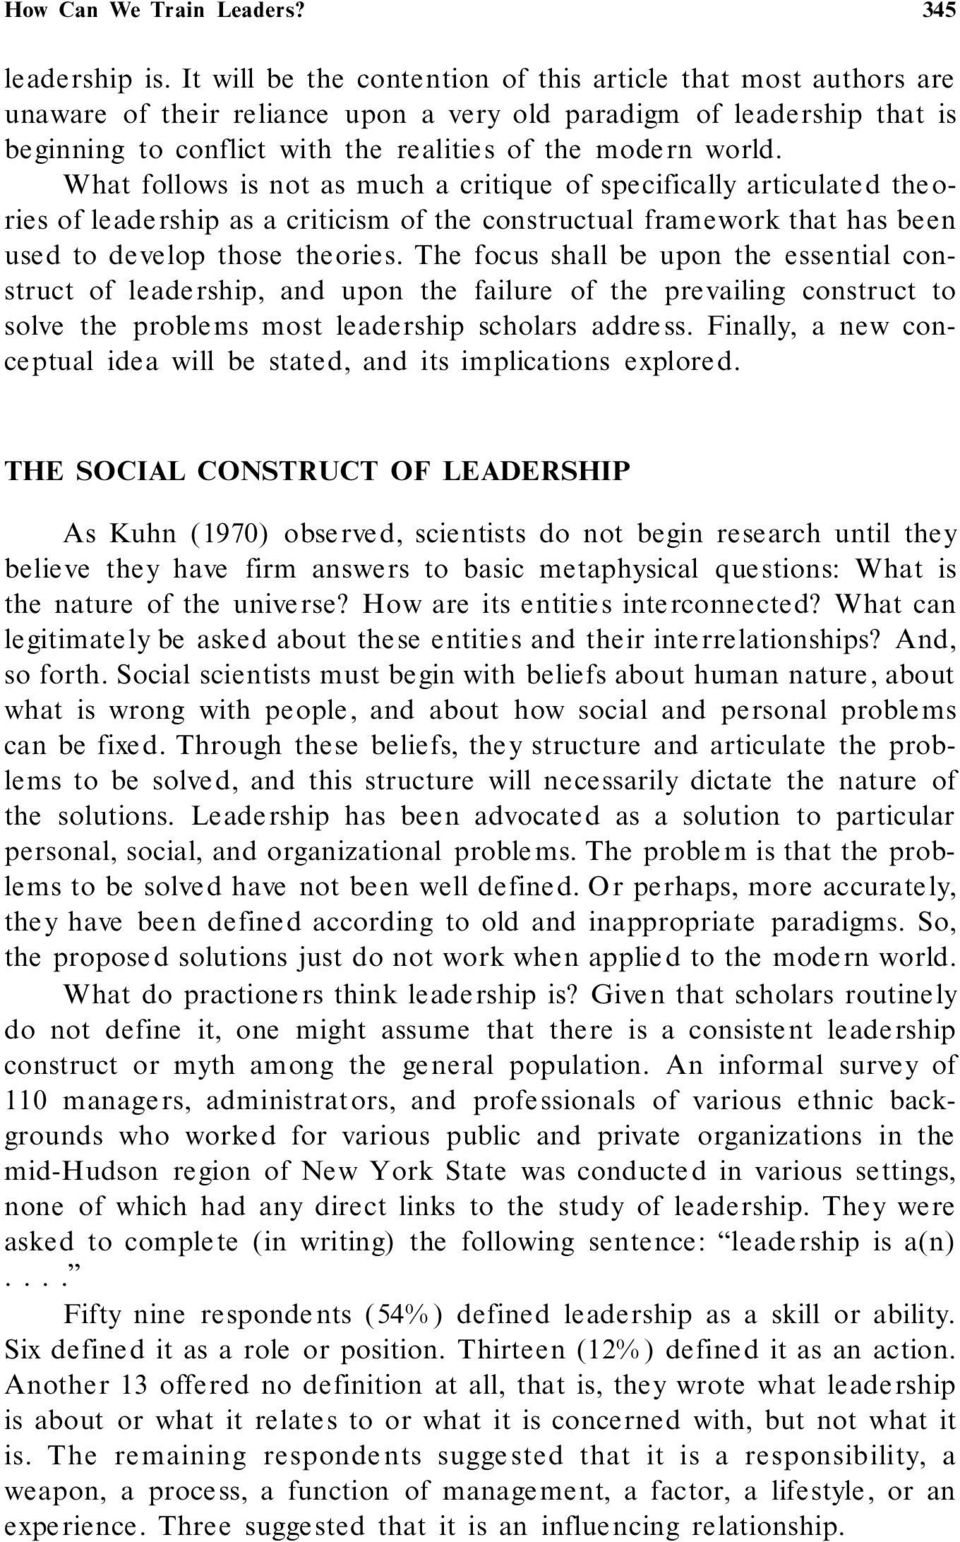 world. What follows is not as much a critique of specifically articulate d theories of leade rship as a criticism of the constructual framework that has been used to develop those theories.